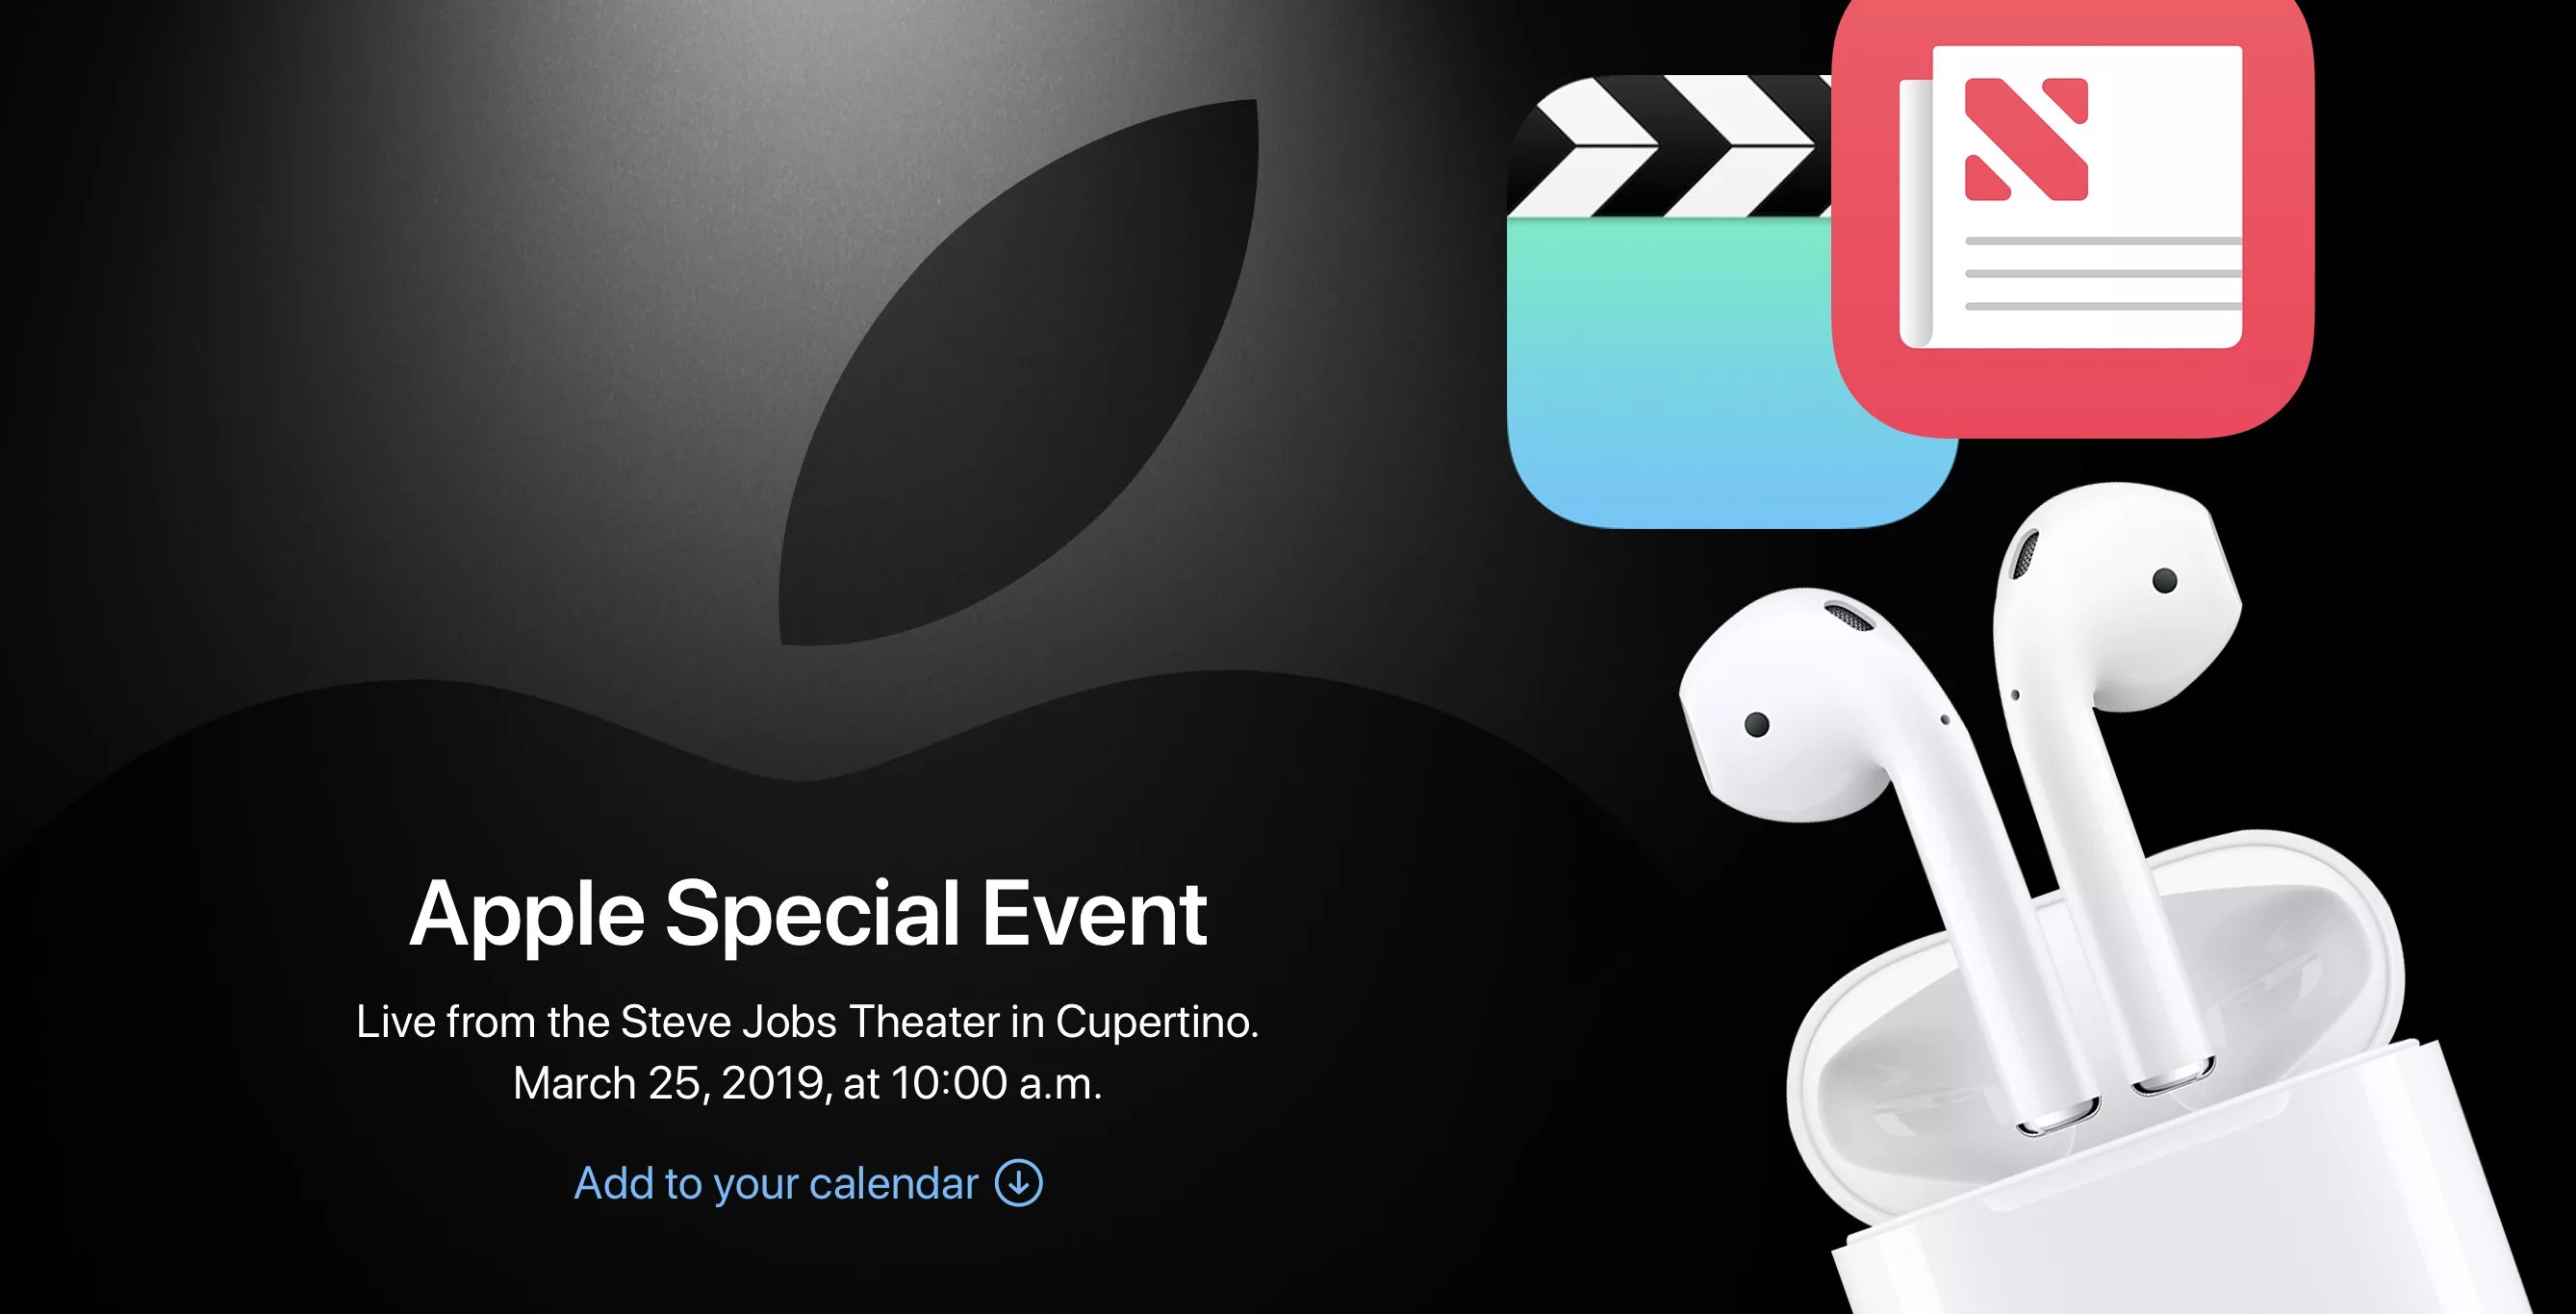 airpods 2 march 25th Apple event